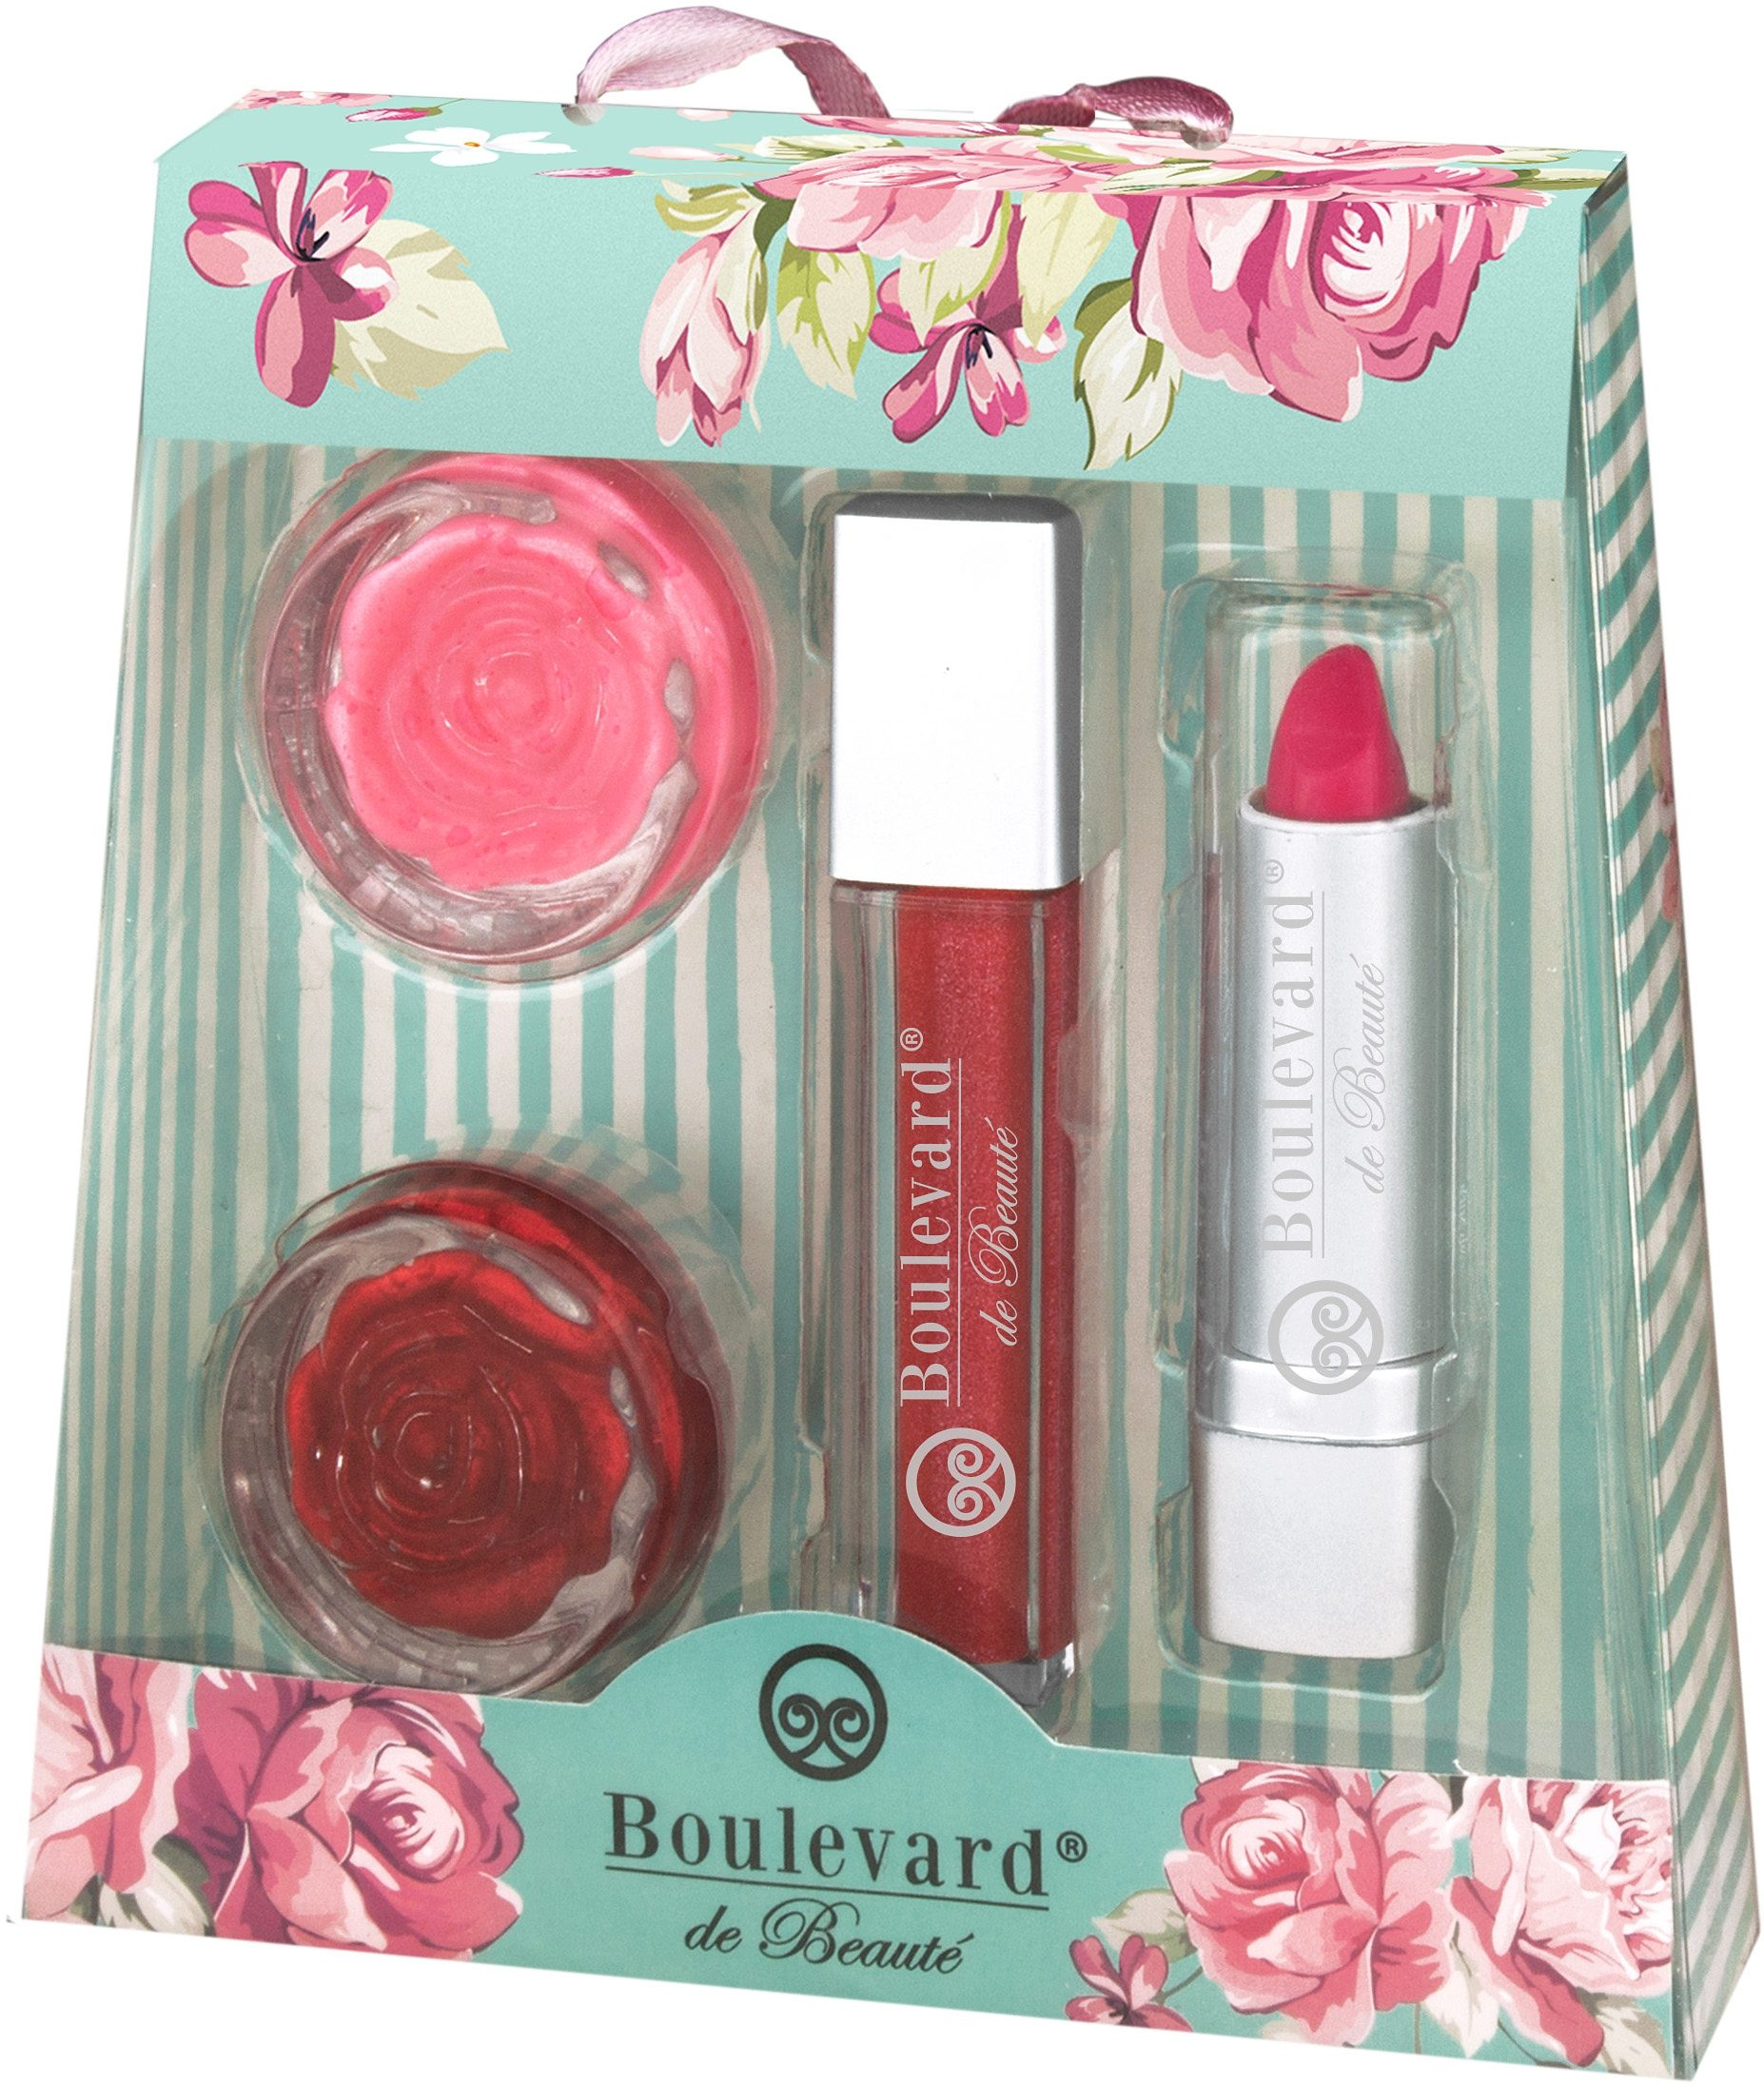 »Be my …Beauty!«, Lippenpflege-Set